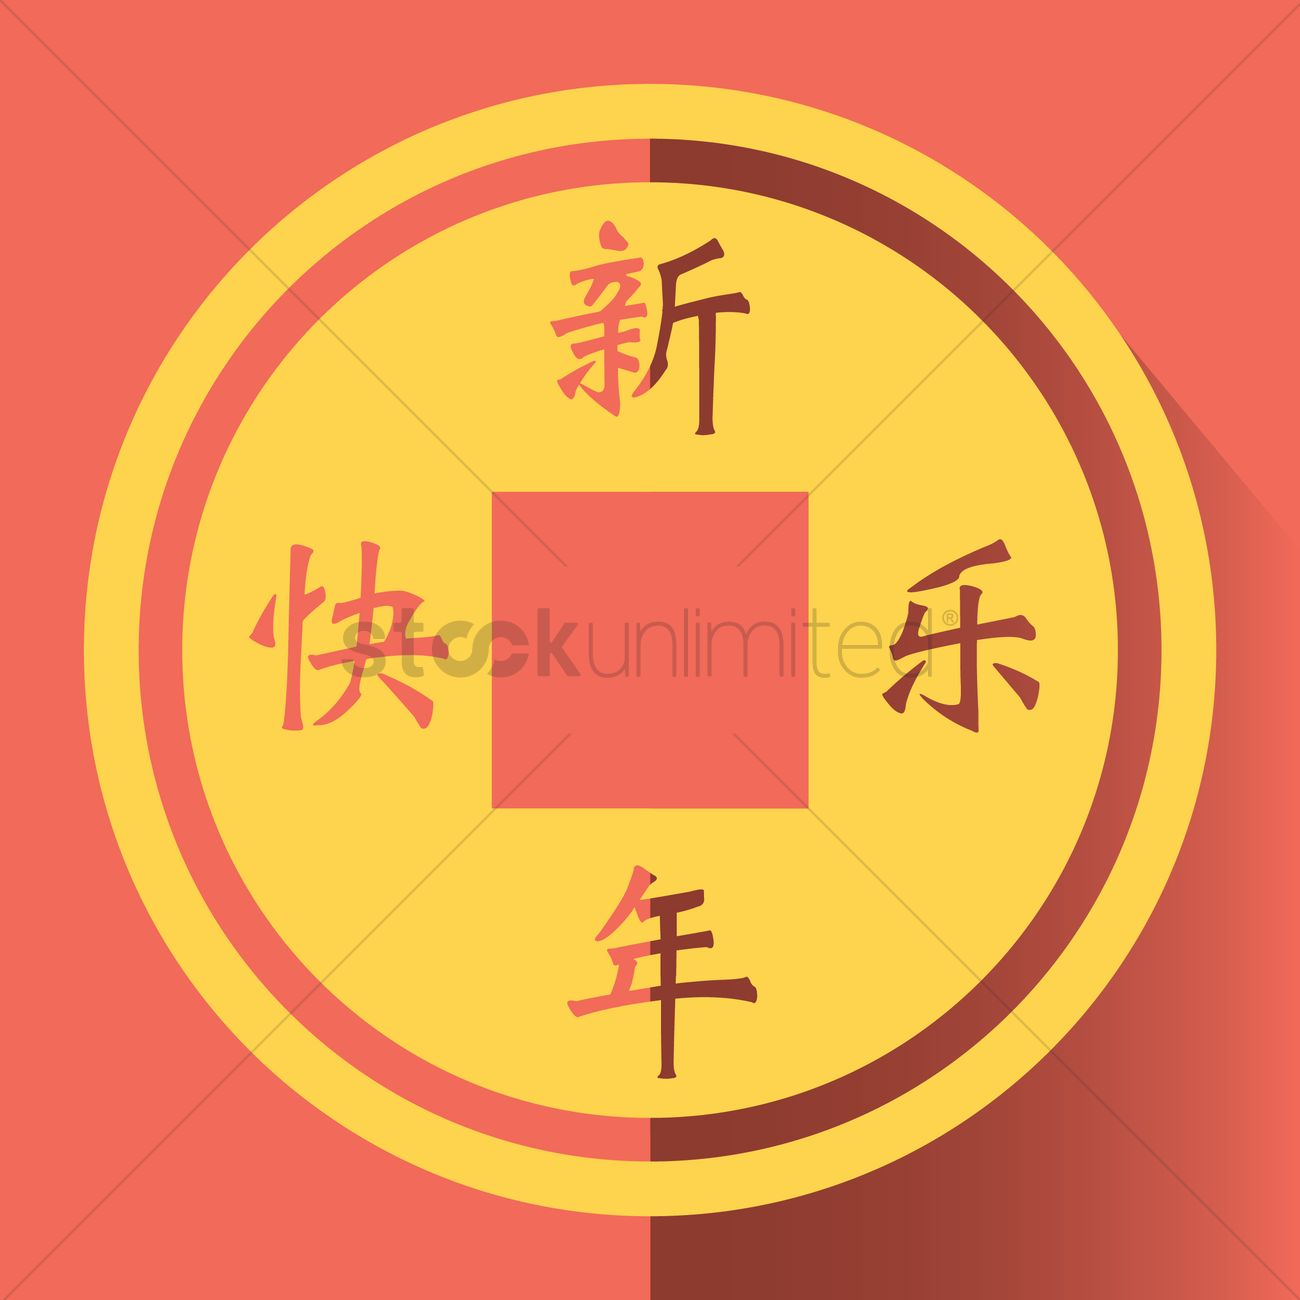 Symbolic Symbolics Symbolical Coin Coins Wealth Prosperity.